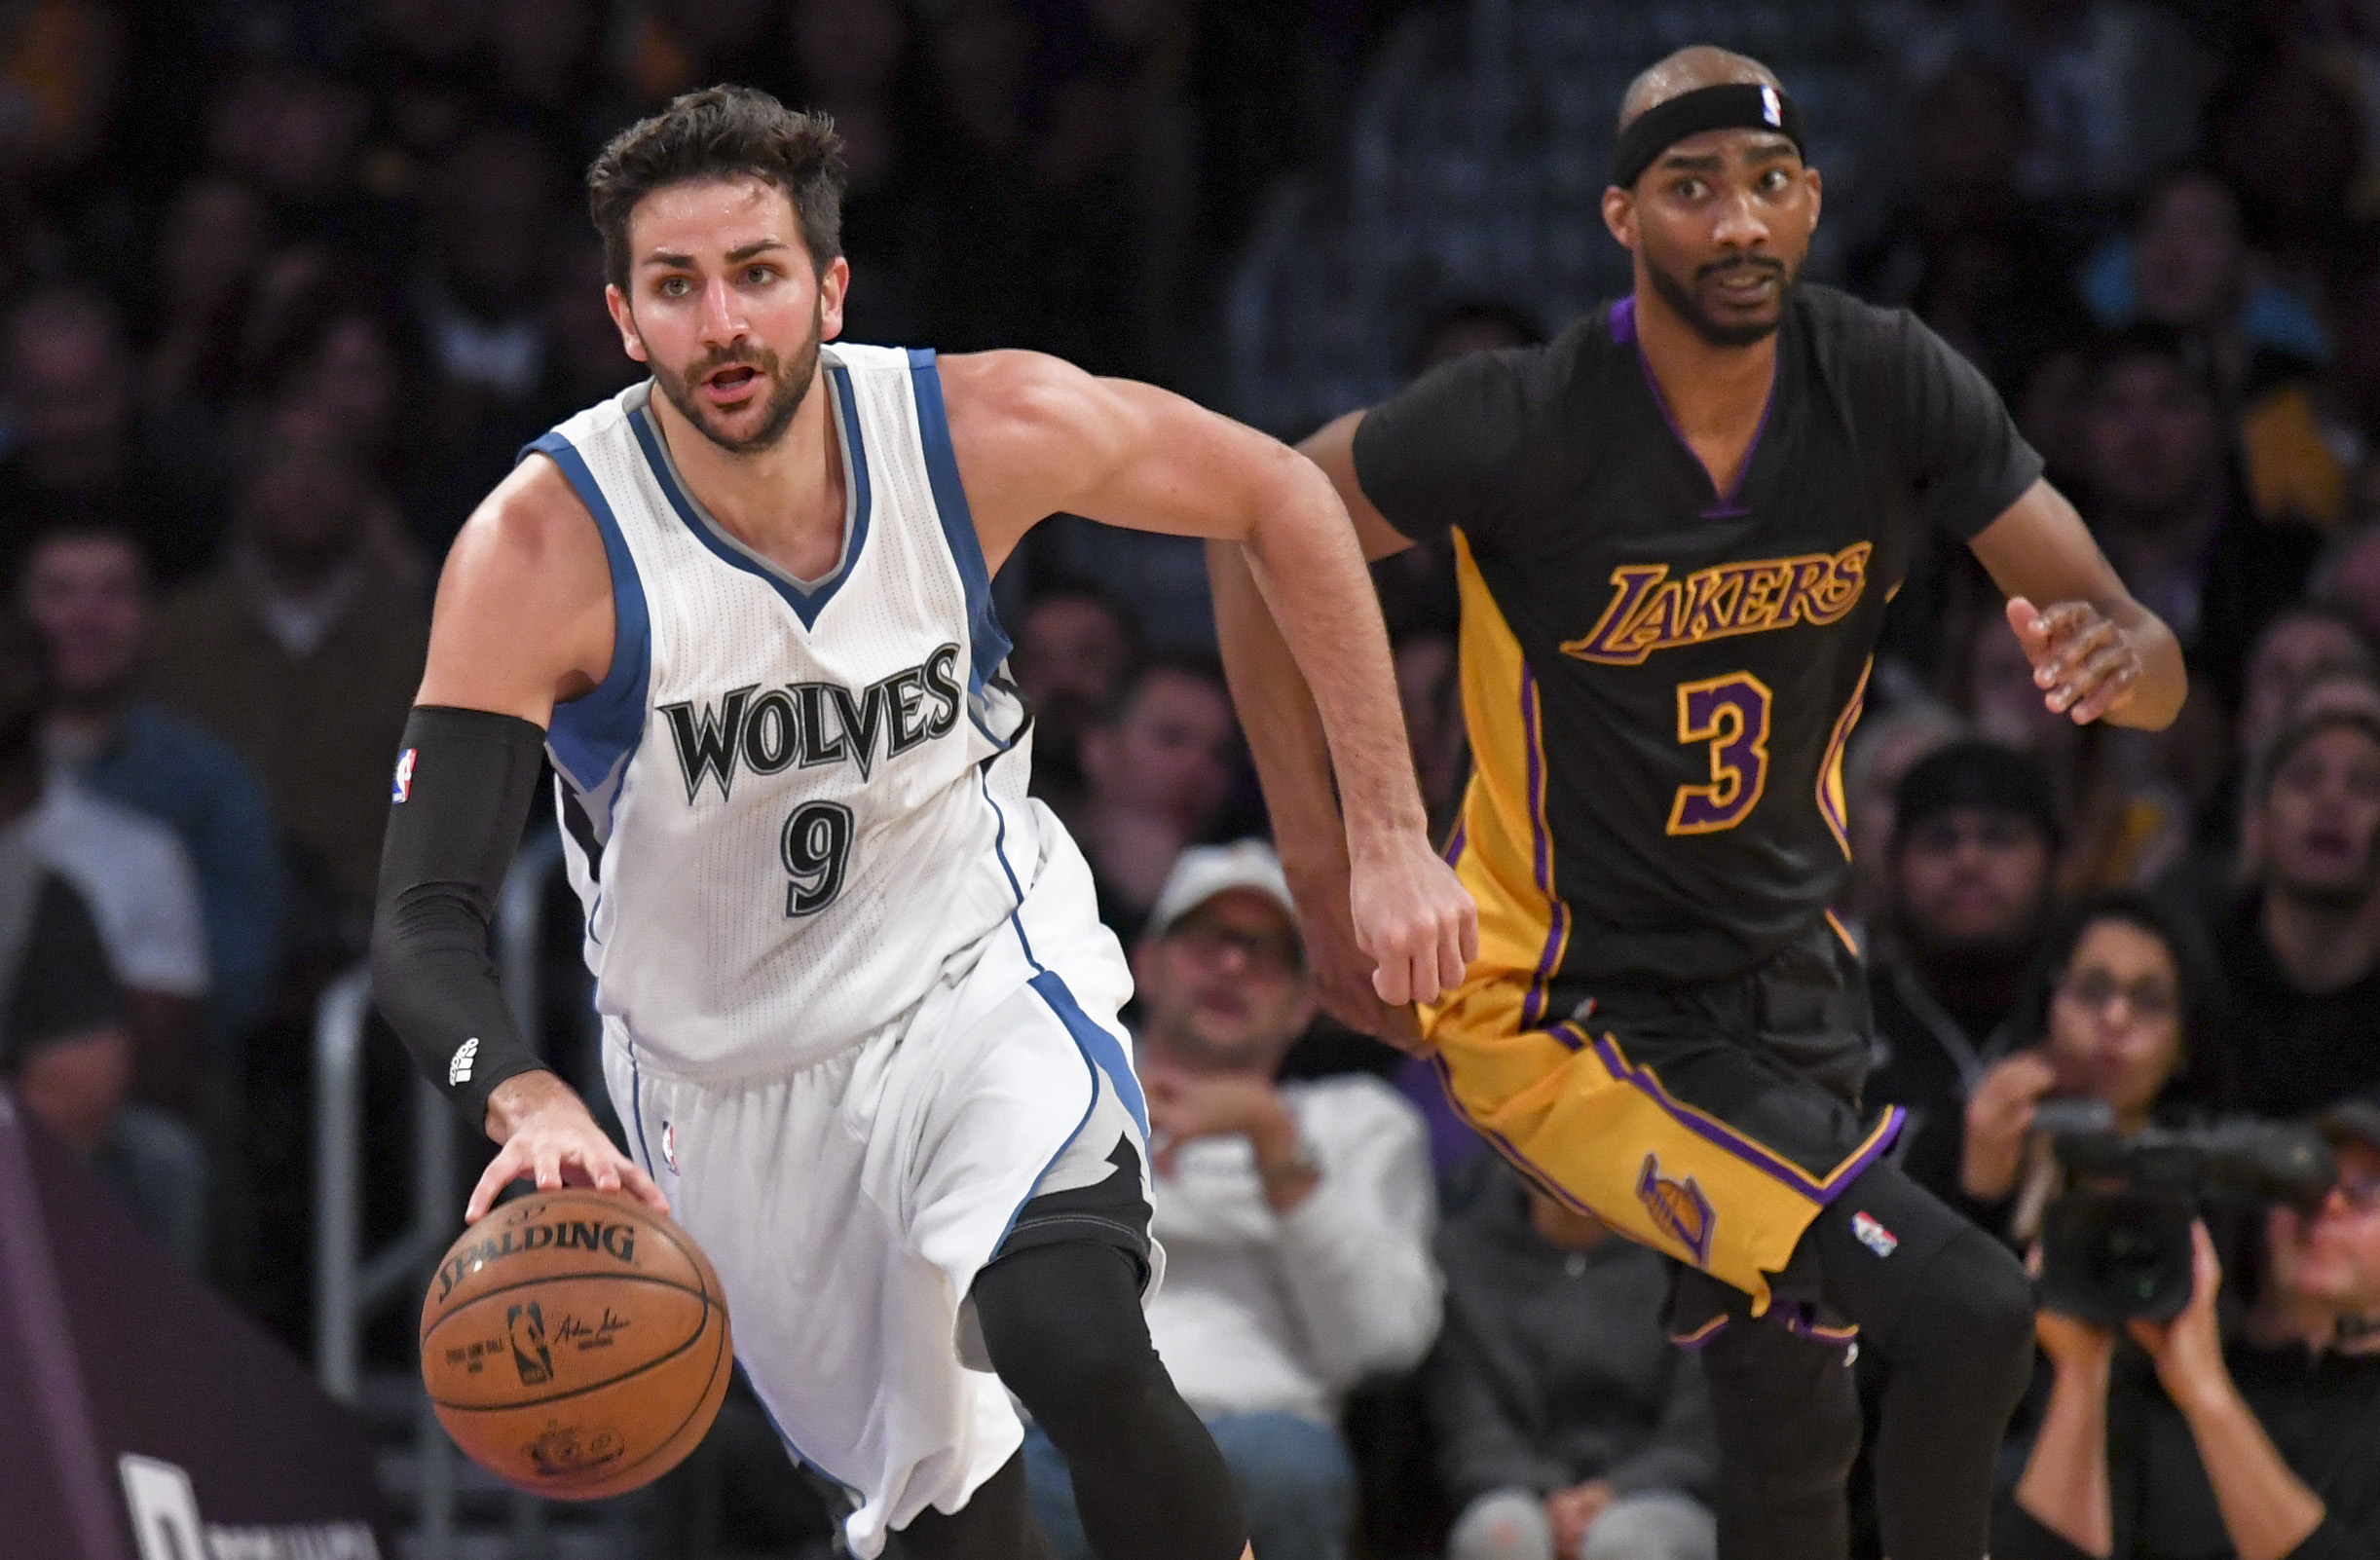 9969328-nba-minnesota-timberwolves-at-los-angeles-lakers